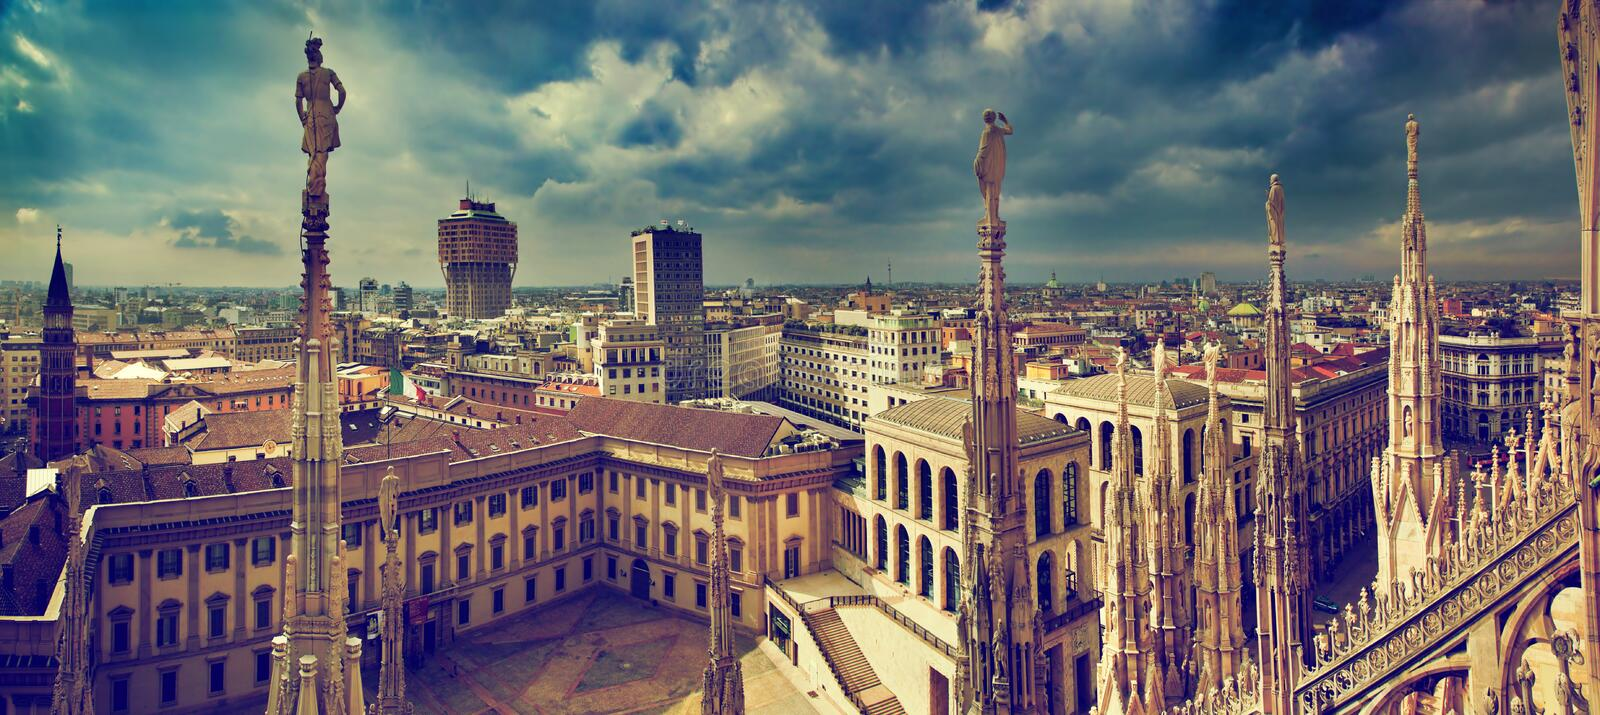 Milan, Italy panorama royalty free stock photos